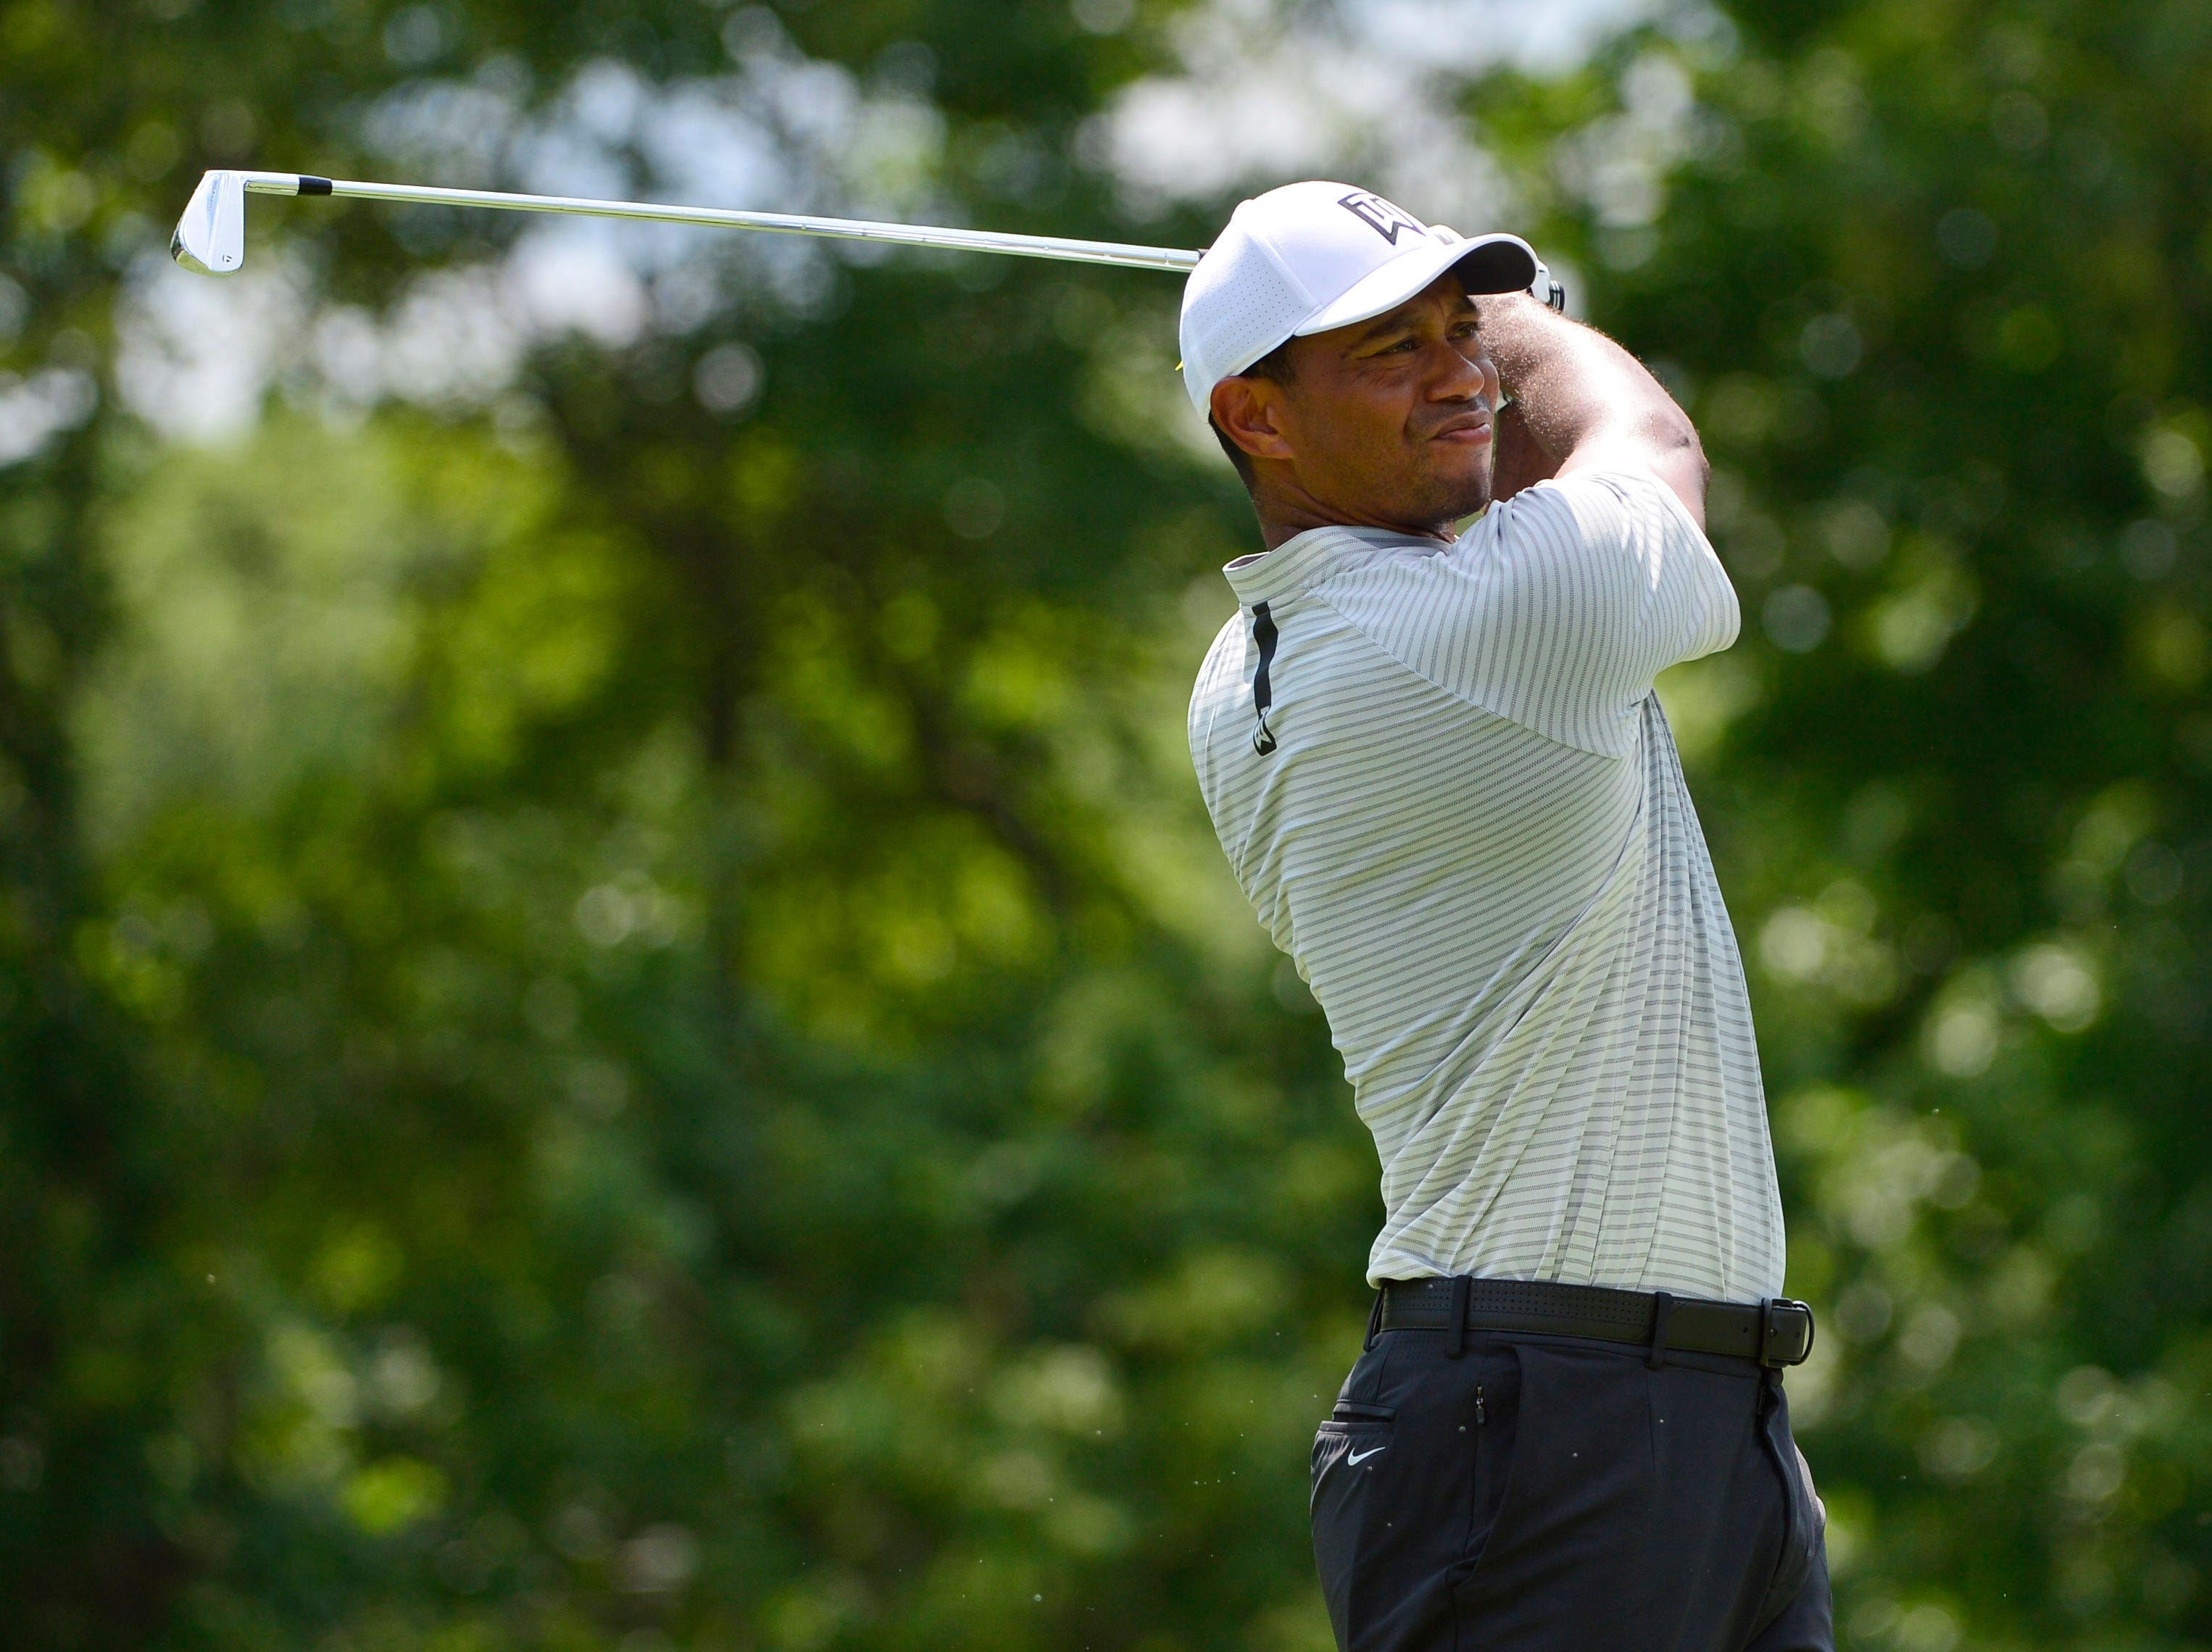 Tiger Woods goes low but will need to dig deep at PGA Championship